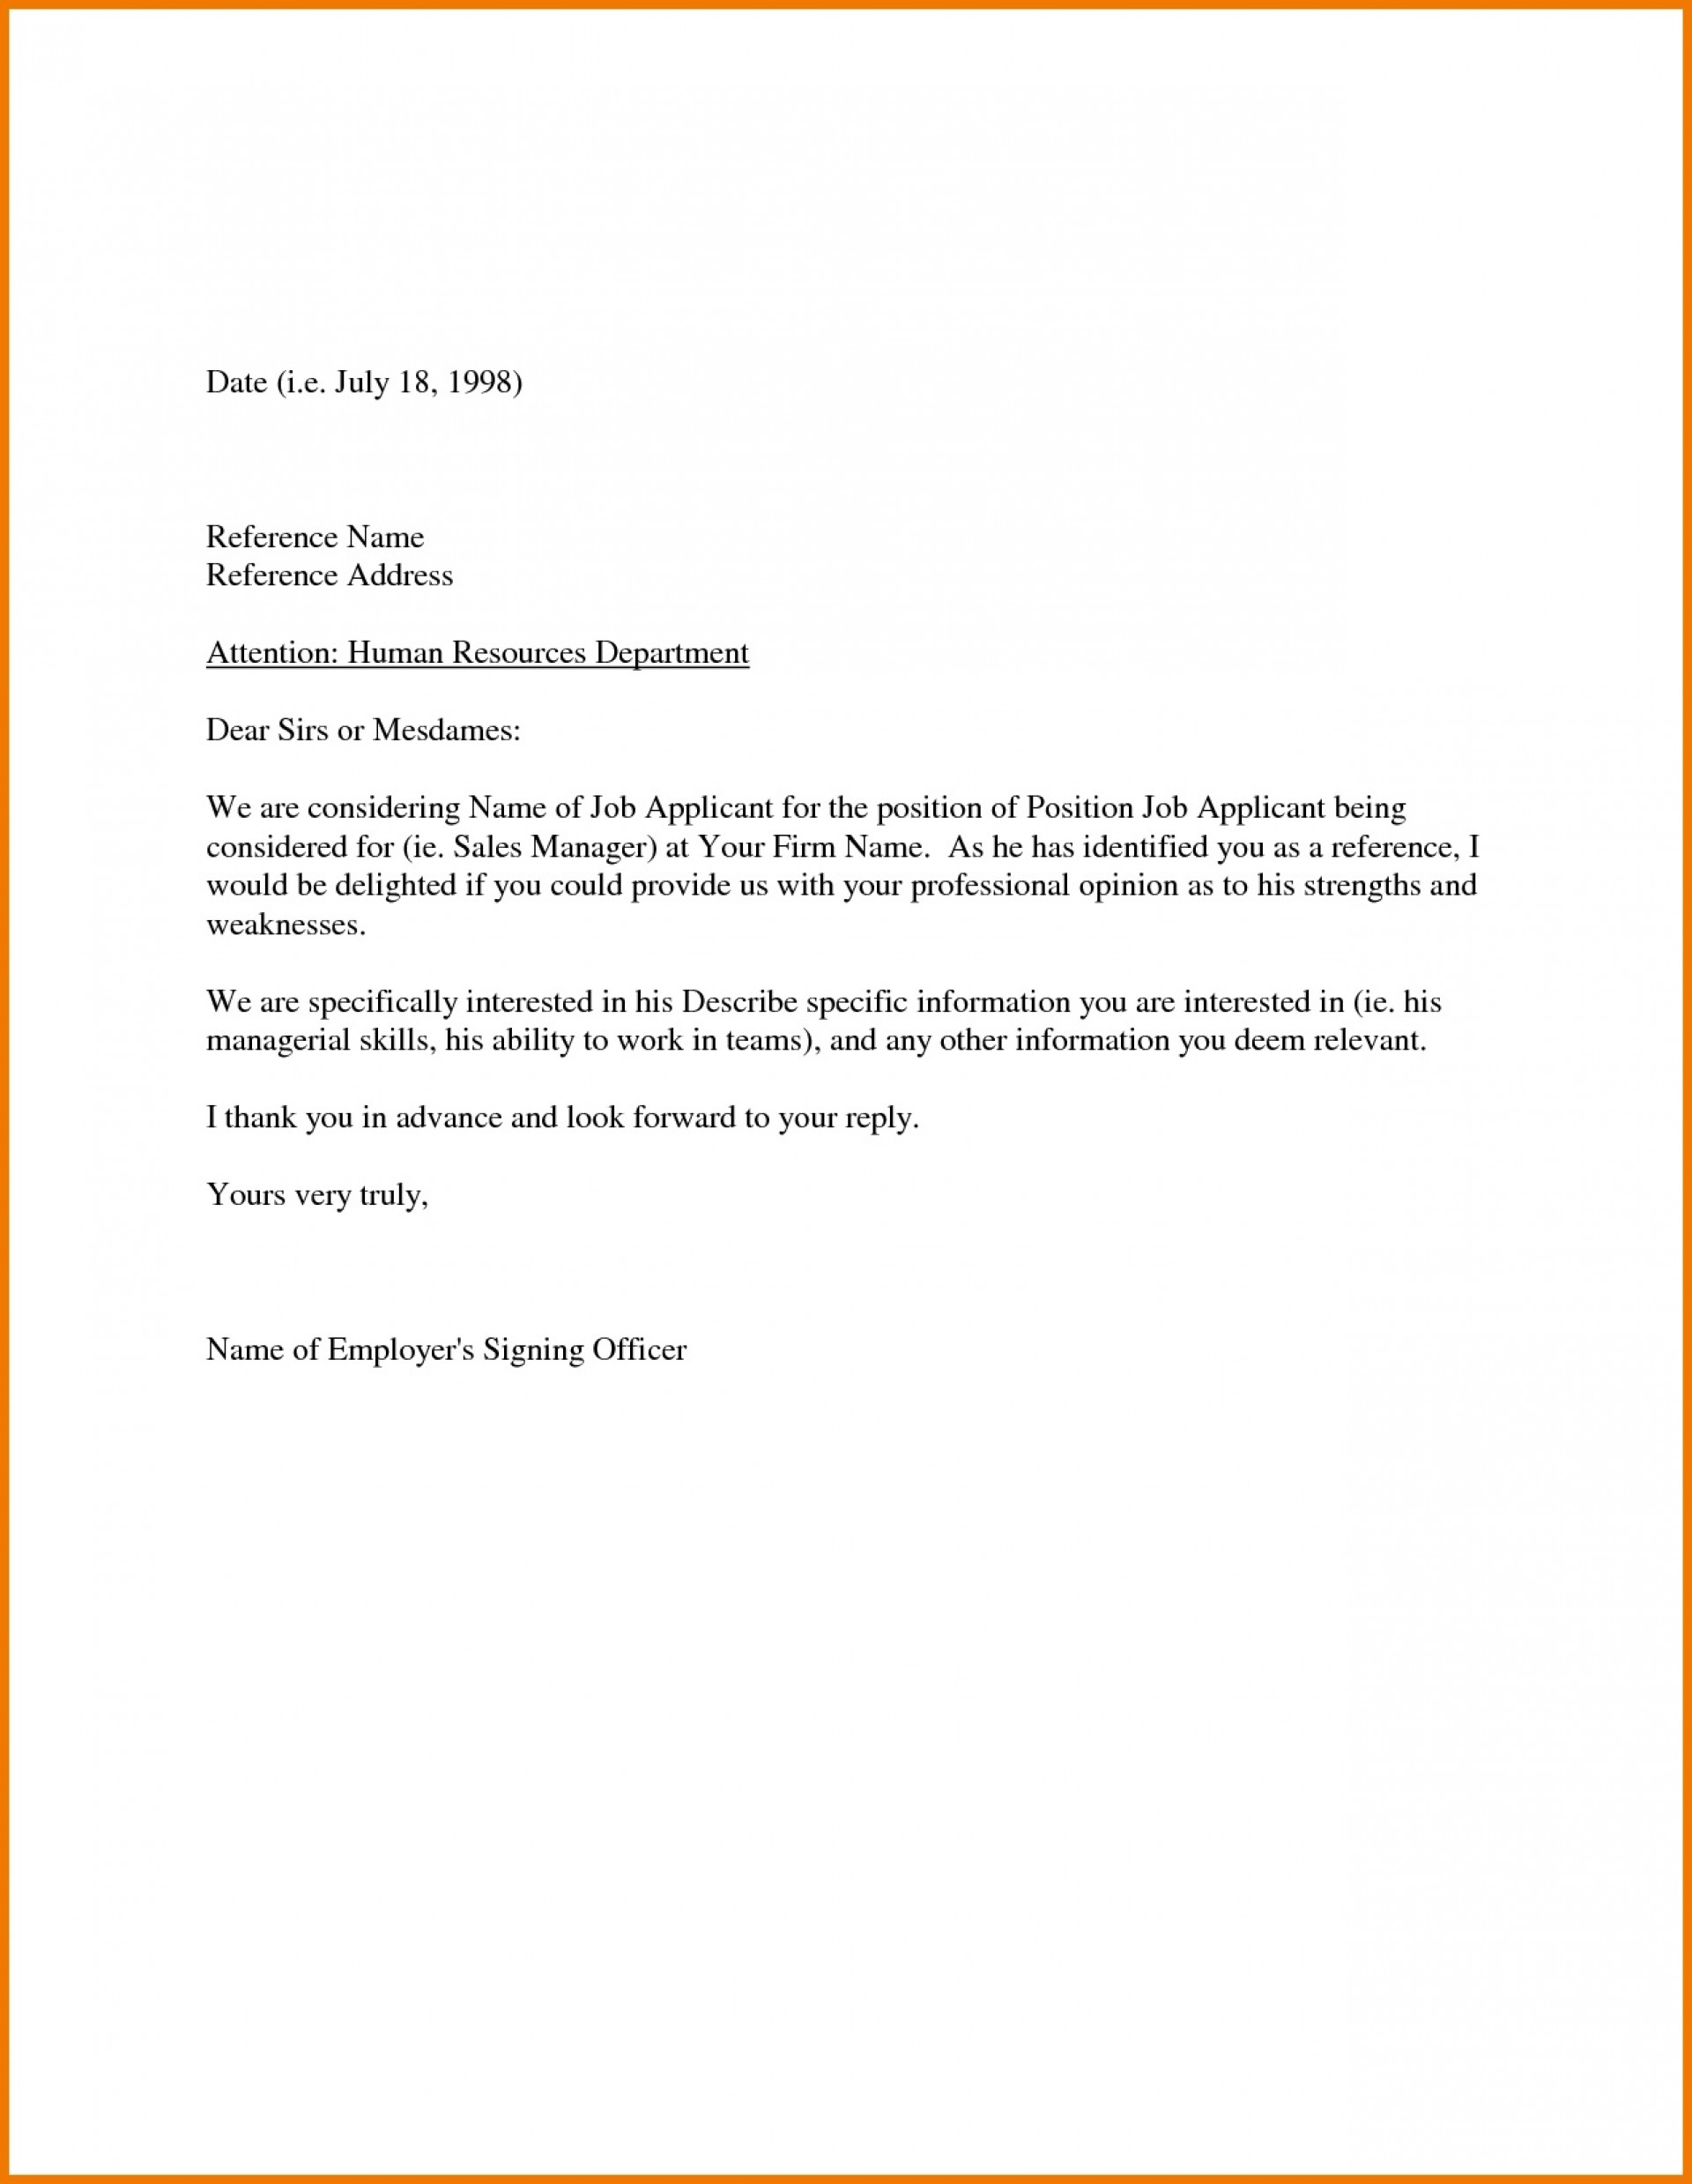 Sample Of Reference Letter For An Employee from www.addictionary.org